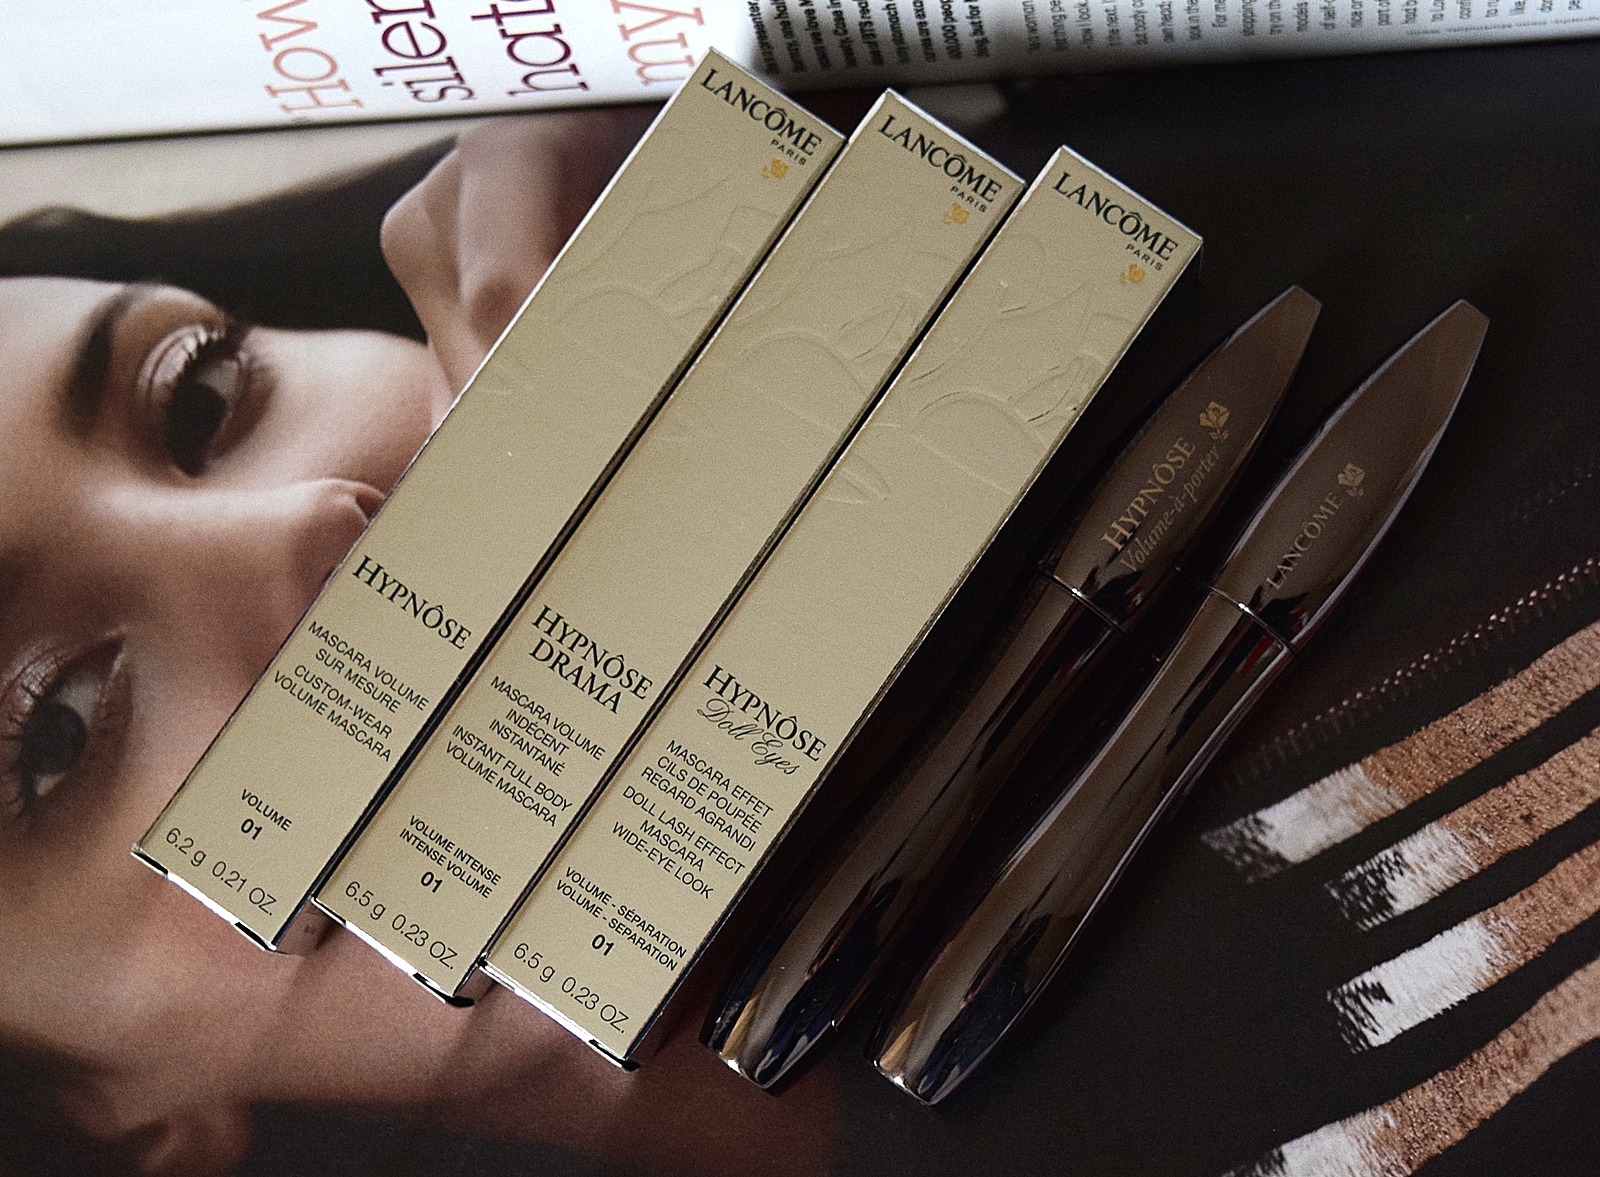 Hypnose Worms testing lancome hypnose mascaras alter ego style